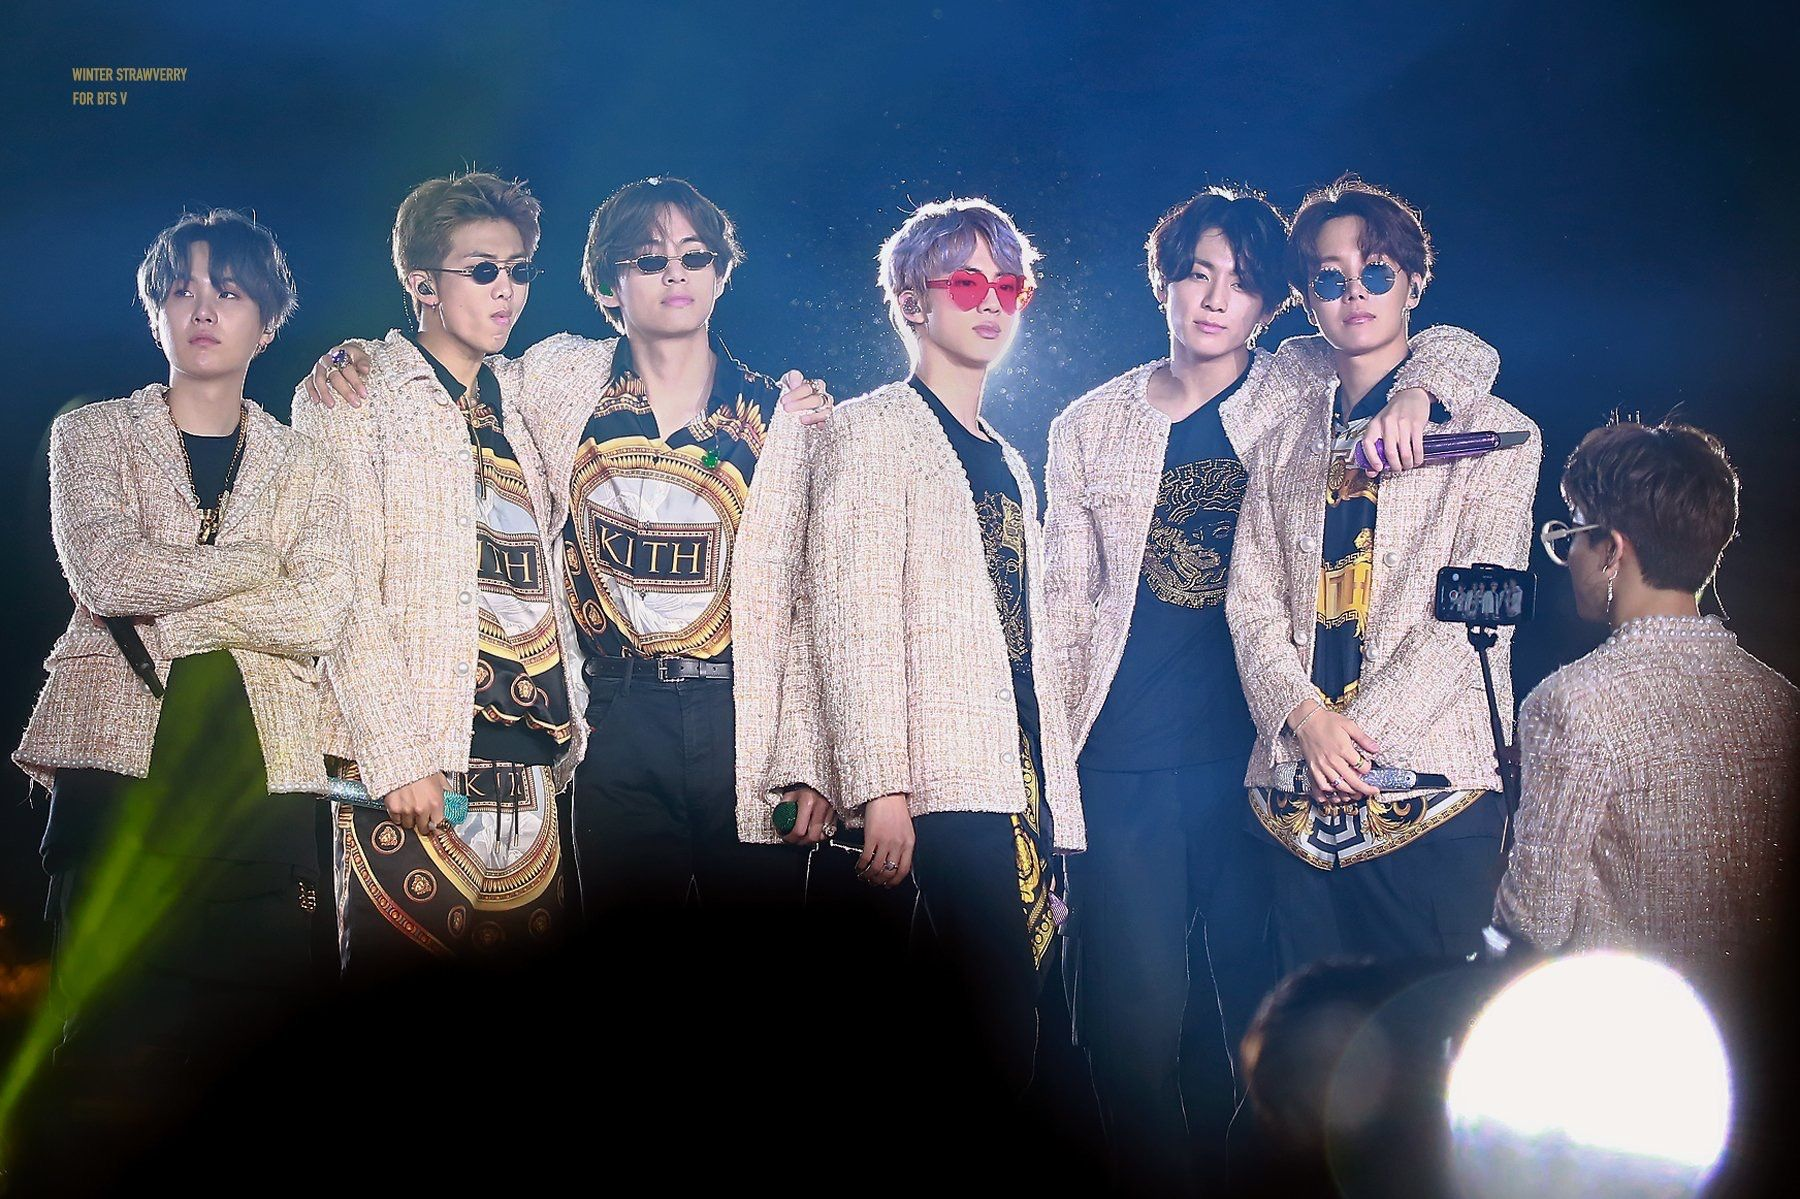 Pin By Н—ƒð—ˆð—‹ð–½ð–ºð—‡ 3 On Bts Ot7 Bts Jungkook Bts Boys Bts Group See more ideas about bts, bts bangtan boy, bts boys. bts jungkook bts boys bts group